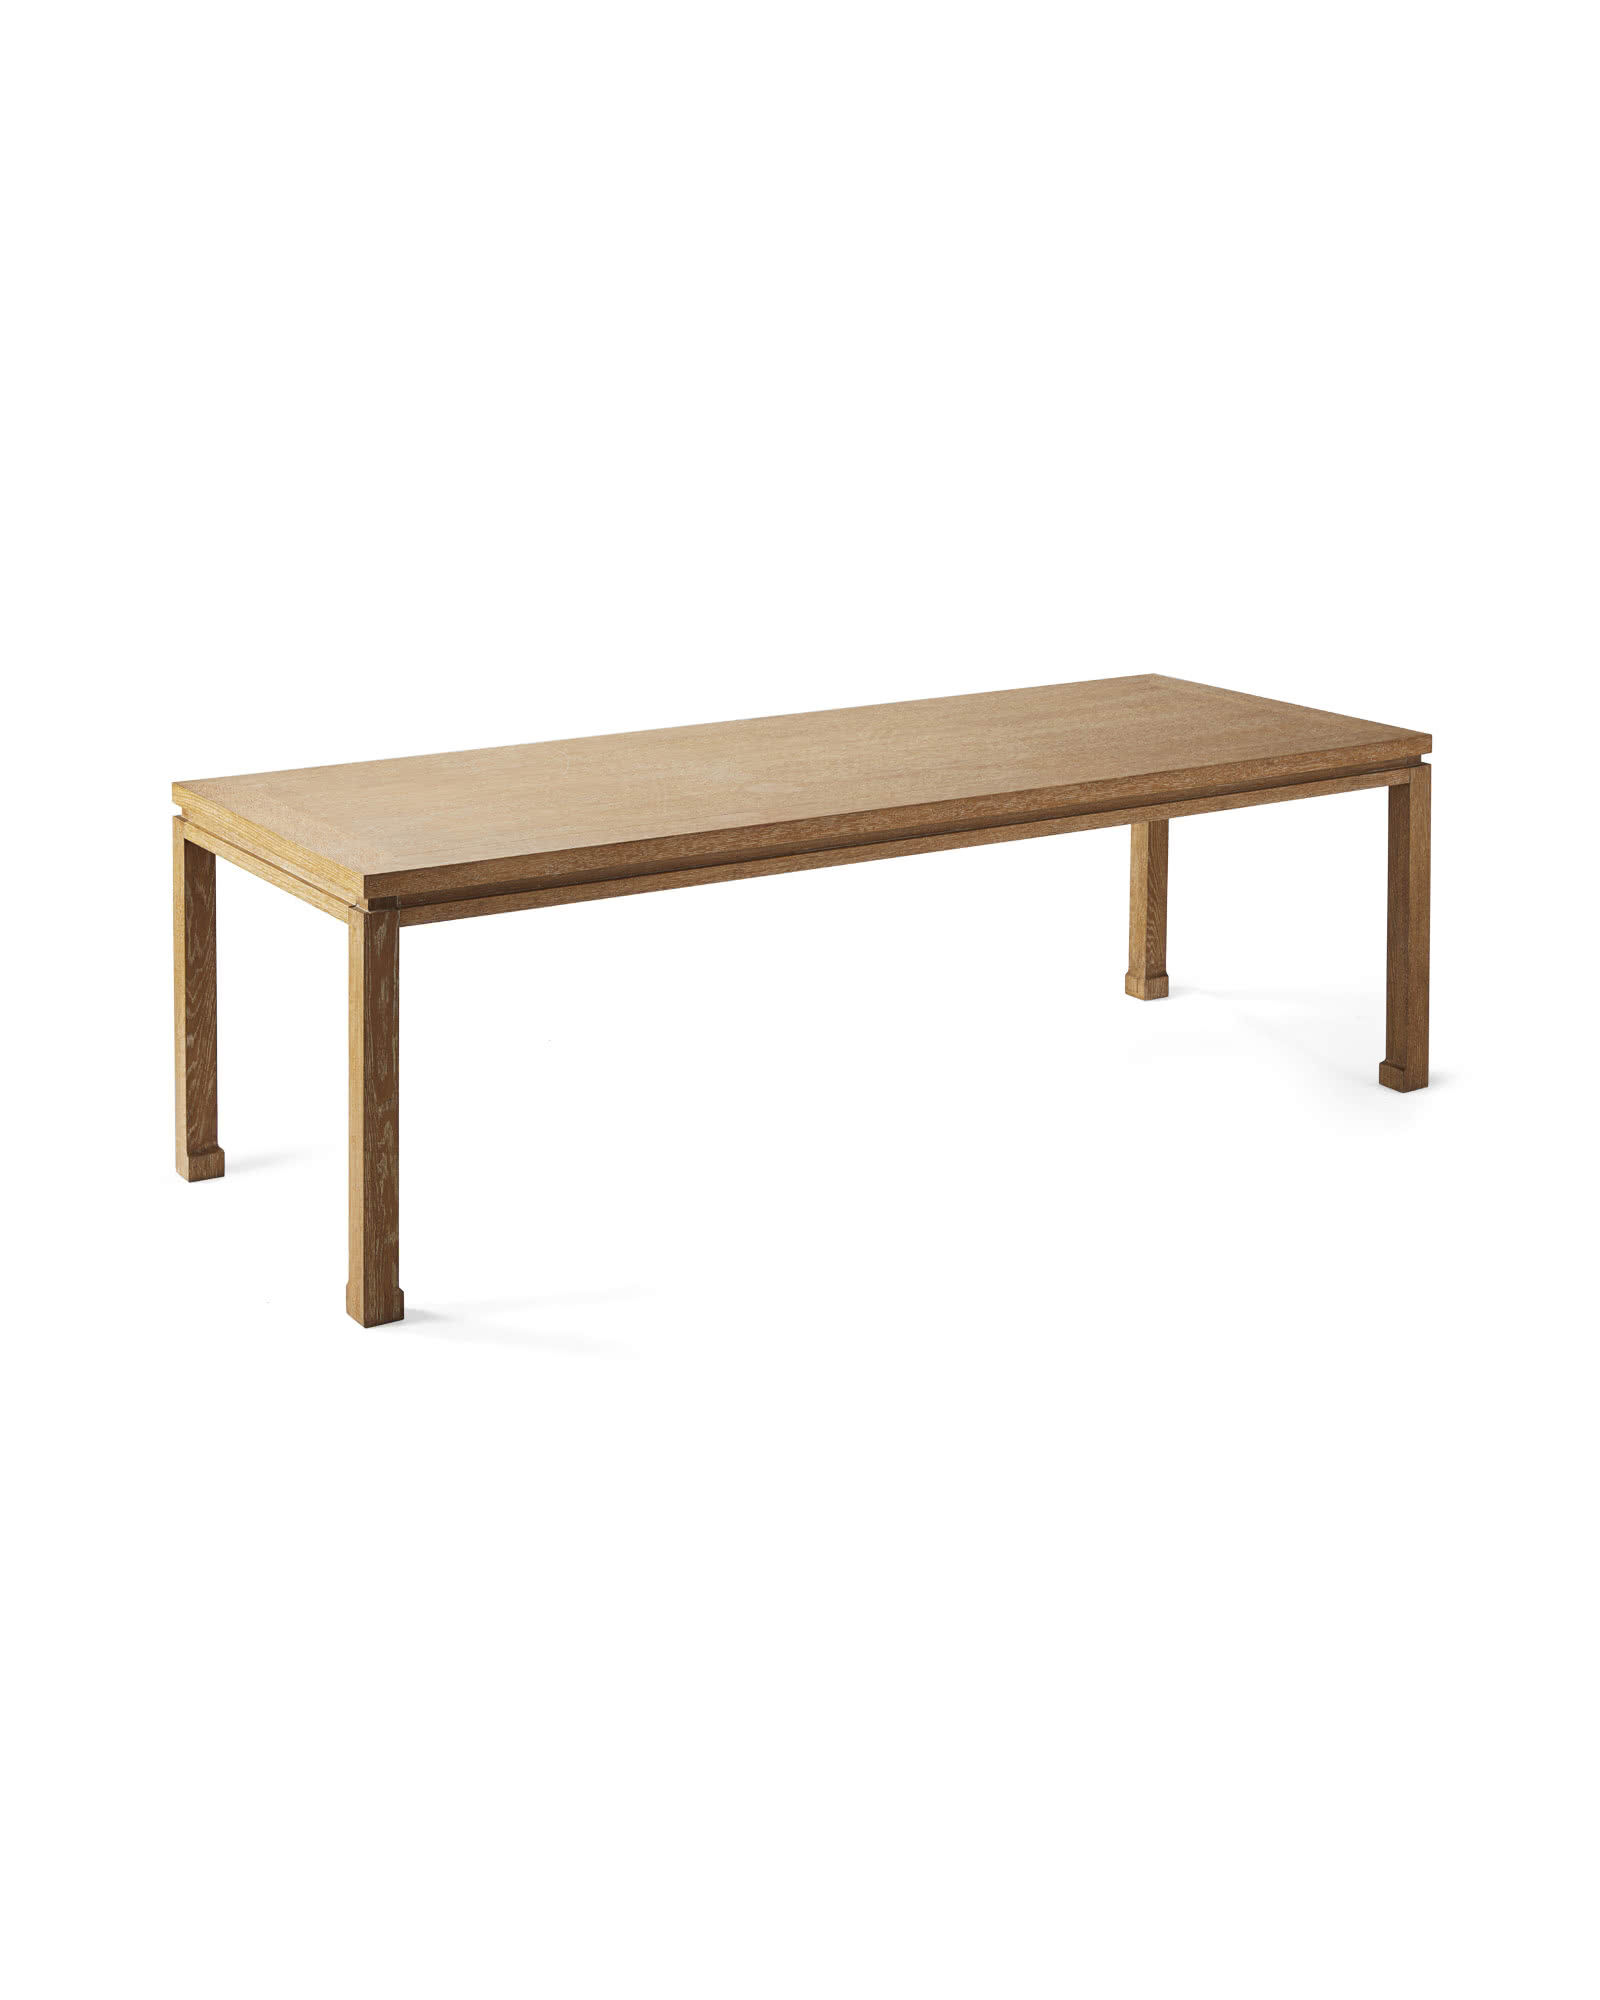 Reese Dining Table,